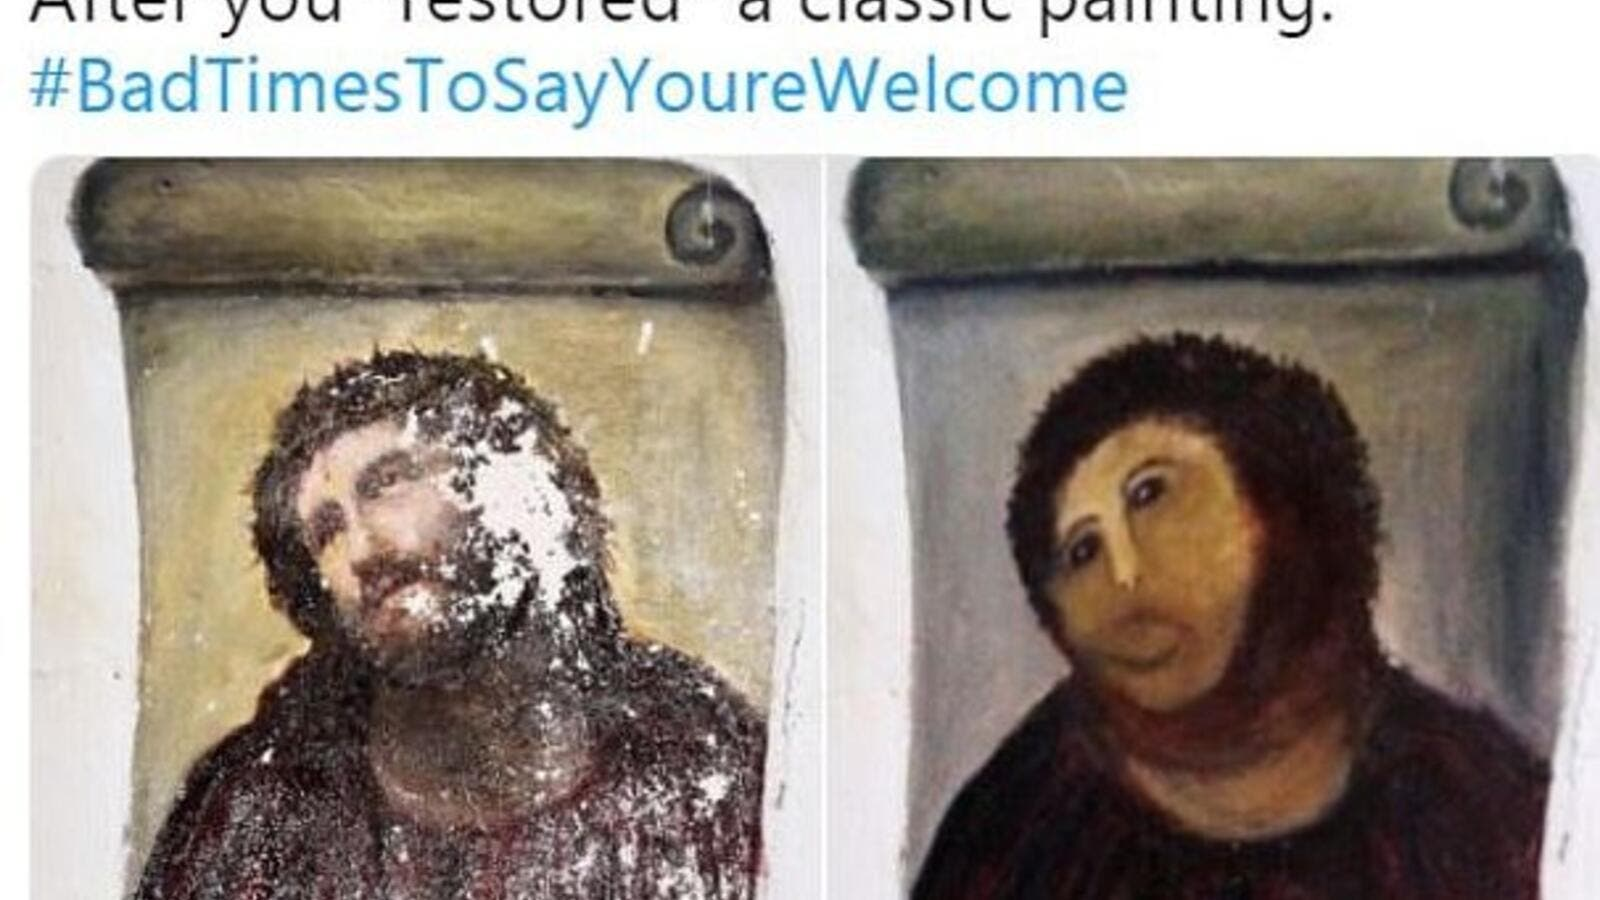 #BadTimesToSayYou'reWelcome: Twitter user @charley_ck14 tweeted a photo of a classic painting that received a tragic makeover, and racked up hundreds of likes (Twitter)